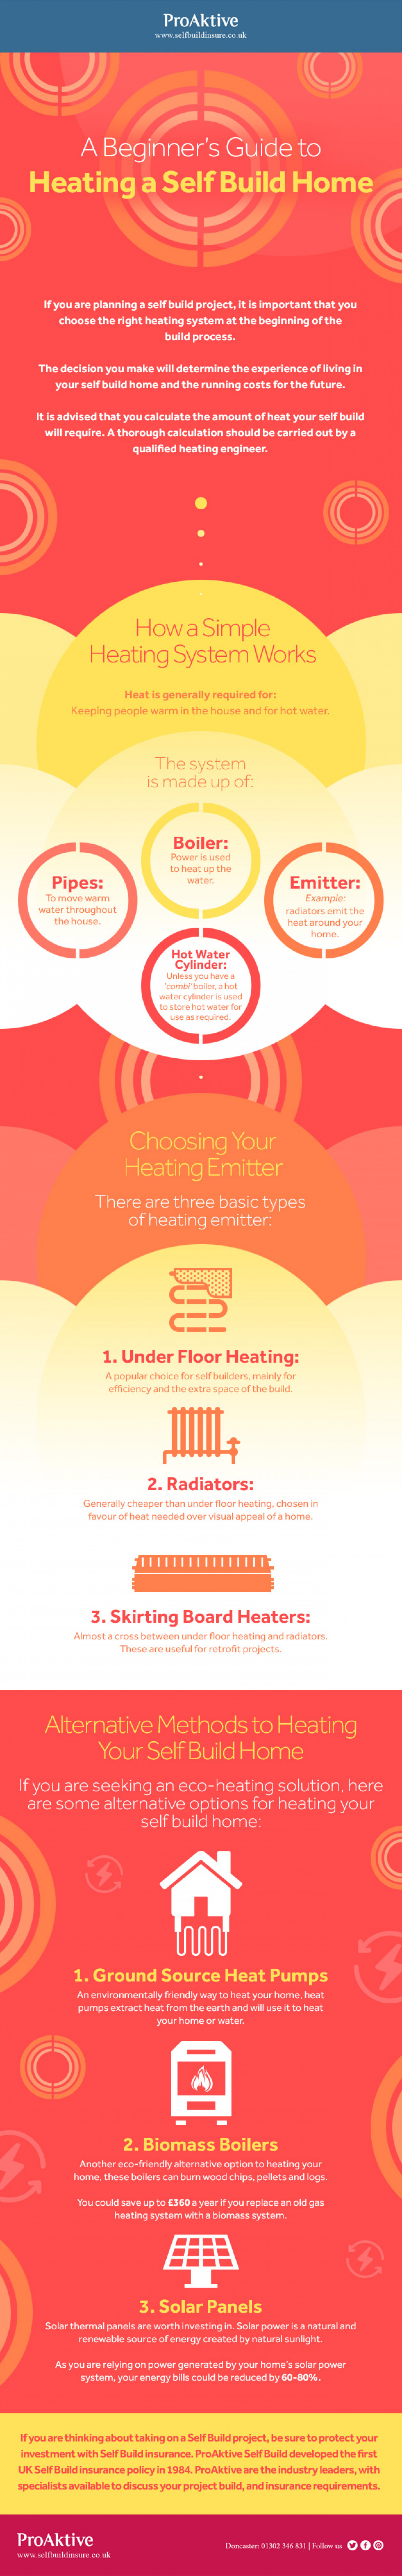 A Beginner's Guide to Heating a Self Build Home Infographic